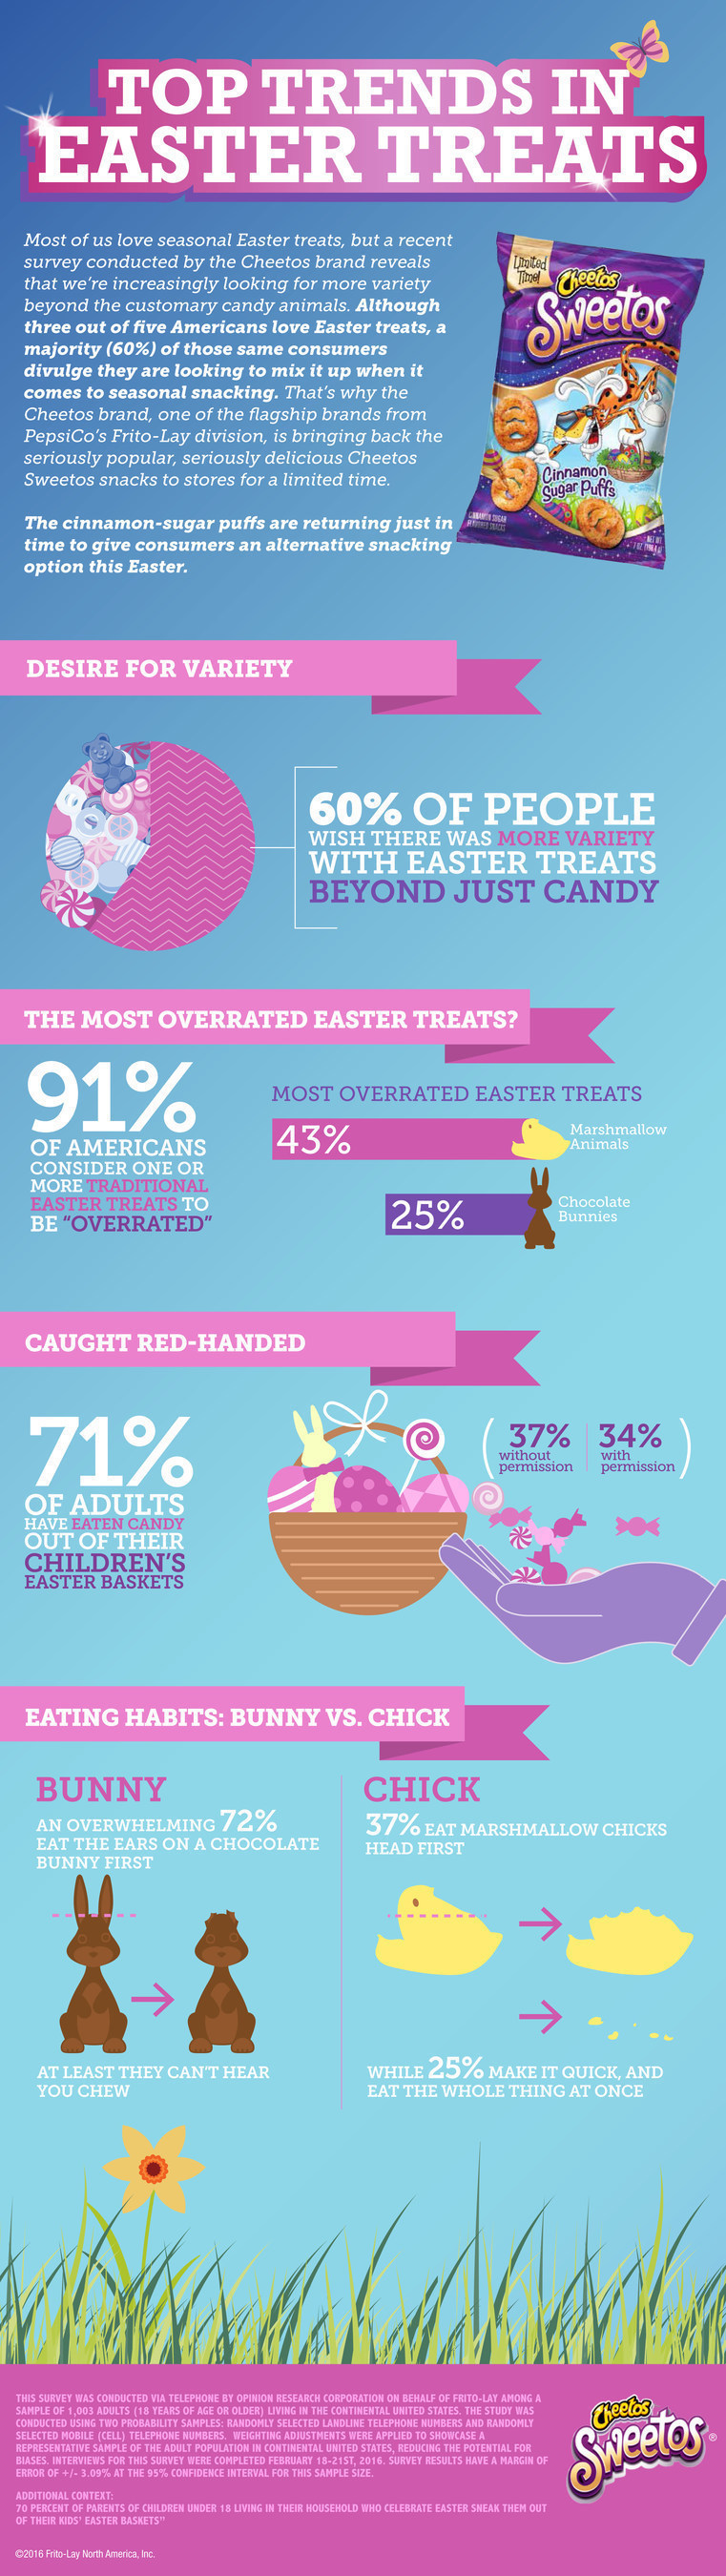 According to a recent survey conducted by the Cheetos brand reveals that when it comes to Easter treats ...